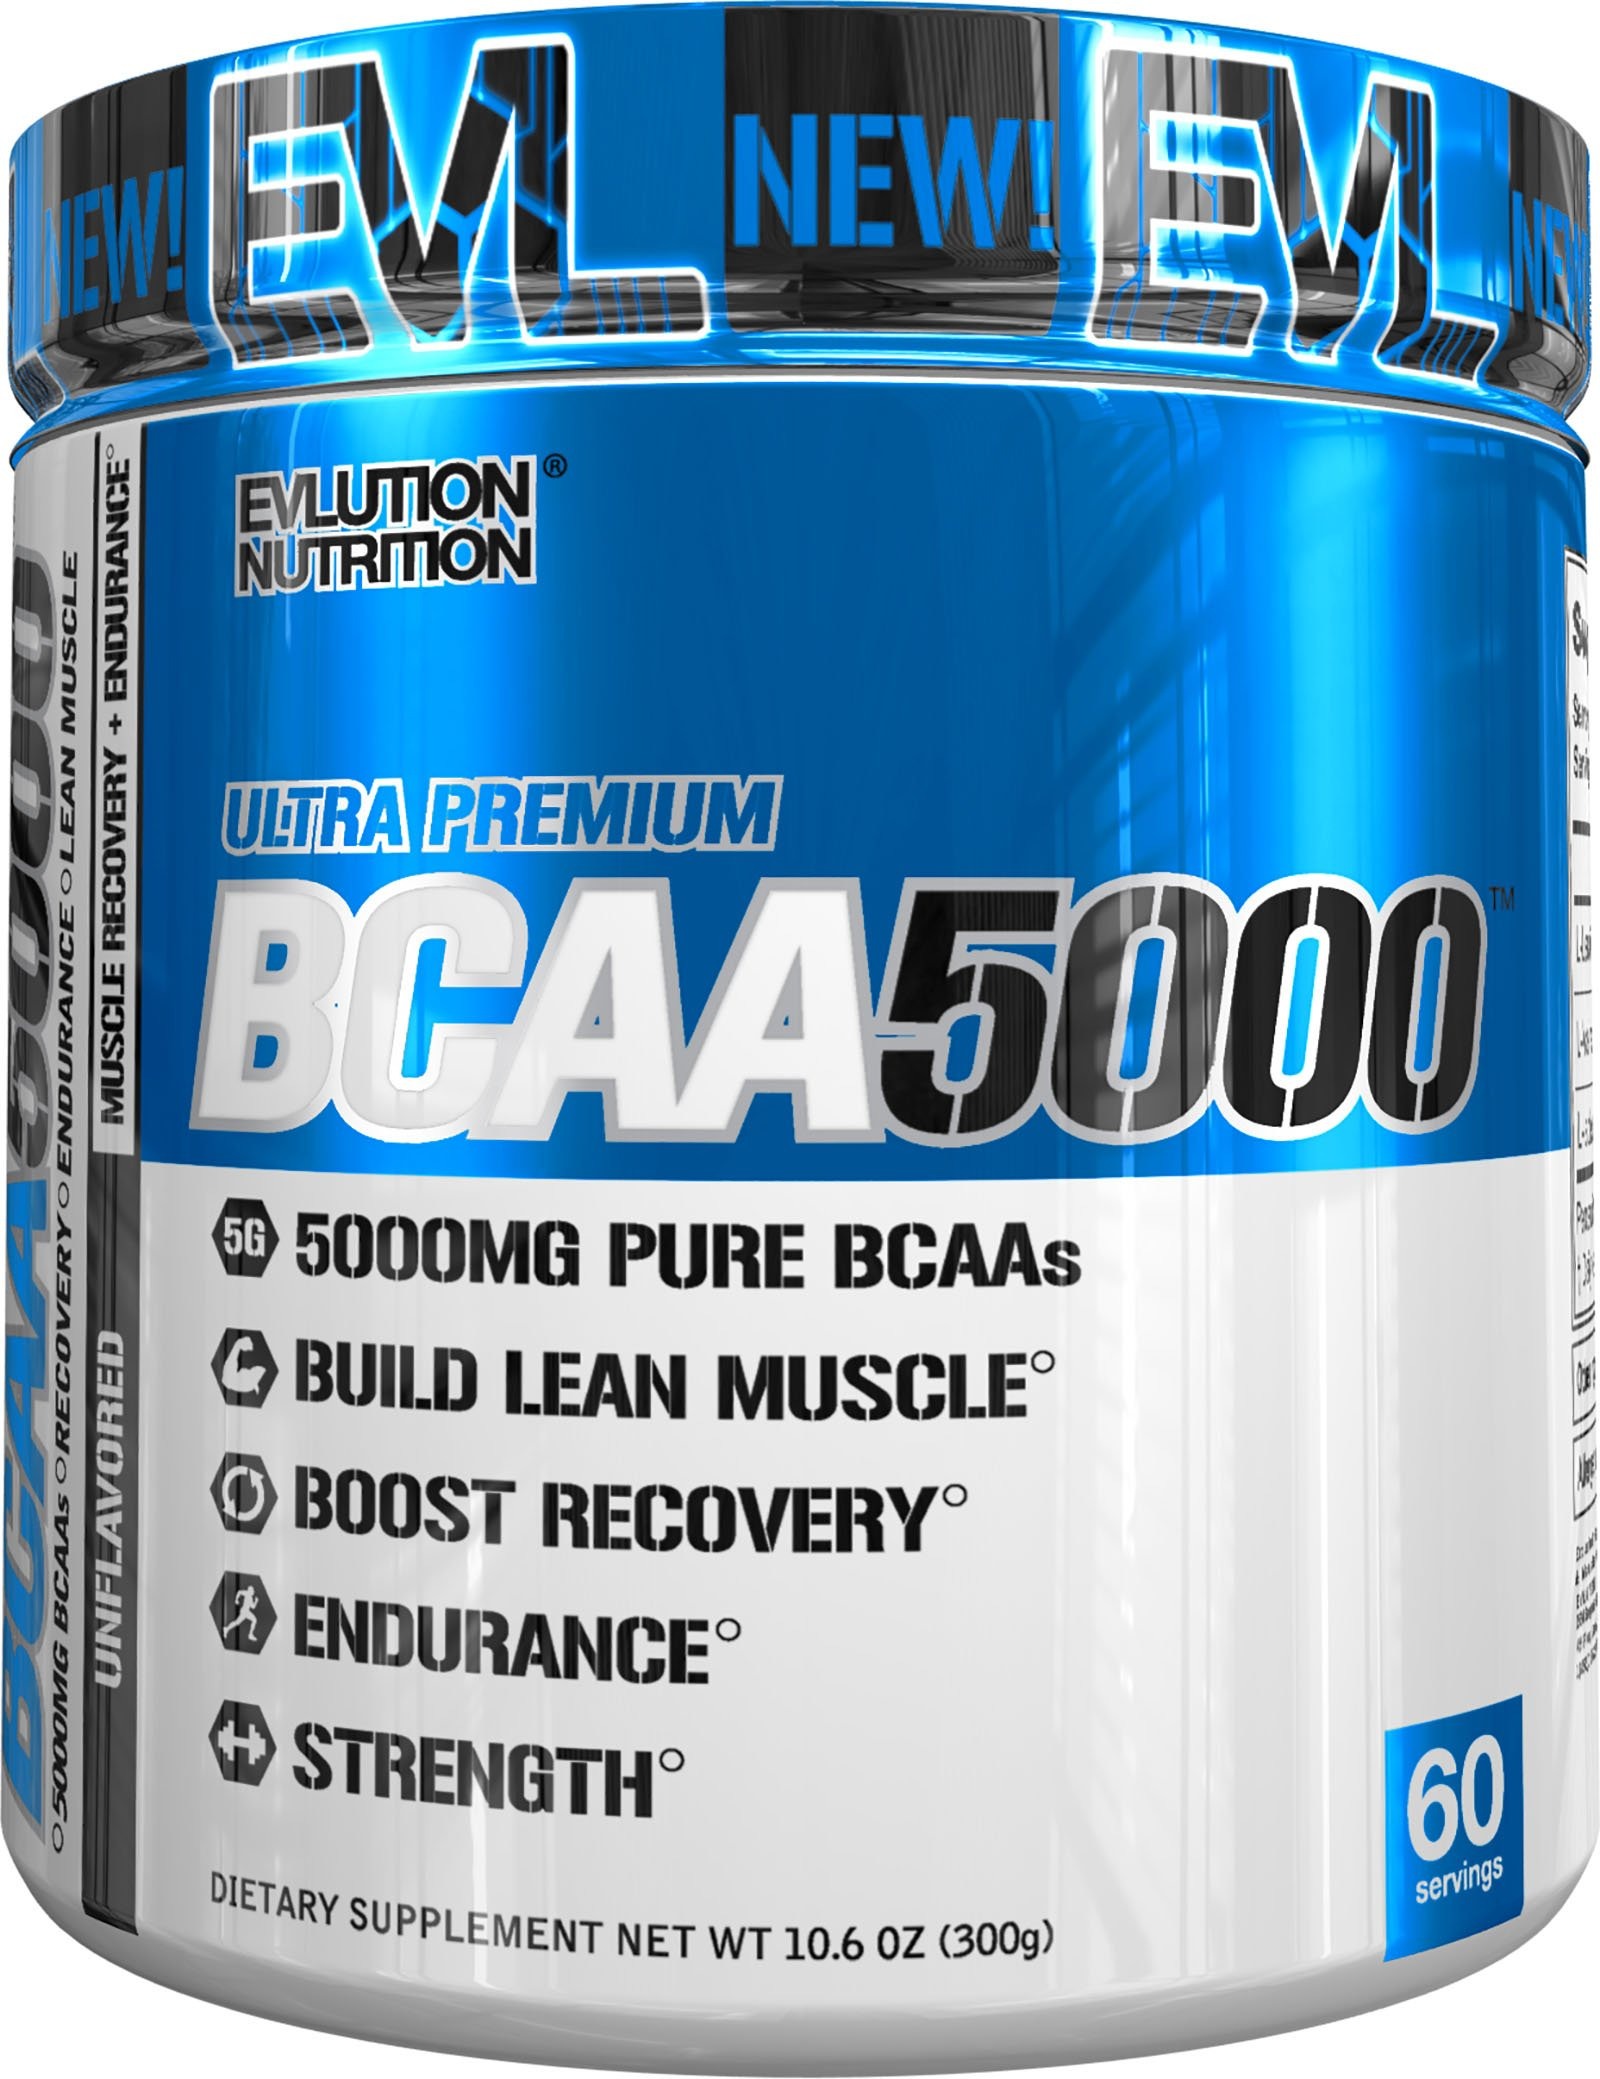 Evlution Nutrition BCAA5000 Powder 5 Grams of Premium BCAAs, 60 Servings (Unflavored)